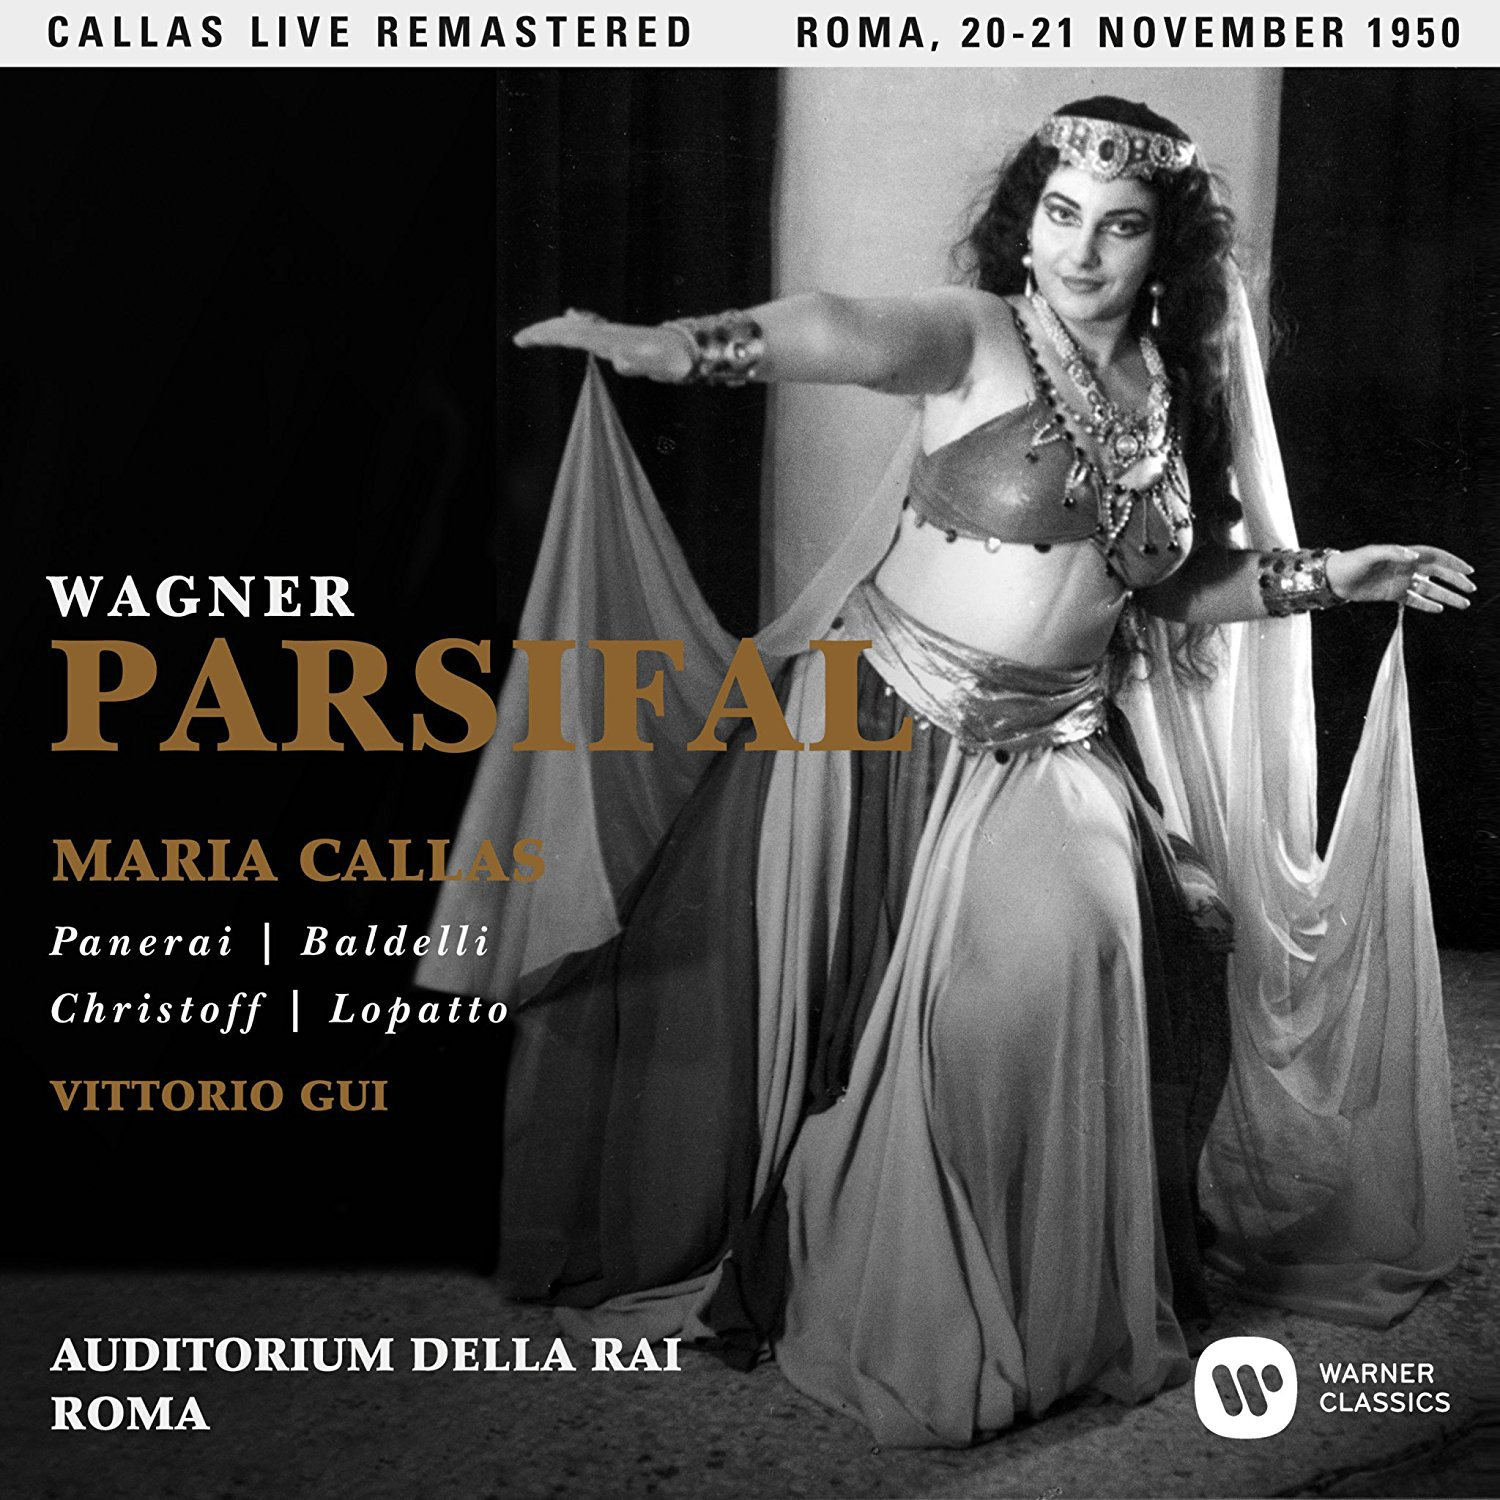 CD : Maria Callas - Wagner: Parsifal (roma 20-21/ 11/ 1950) (CD)